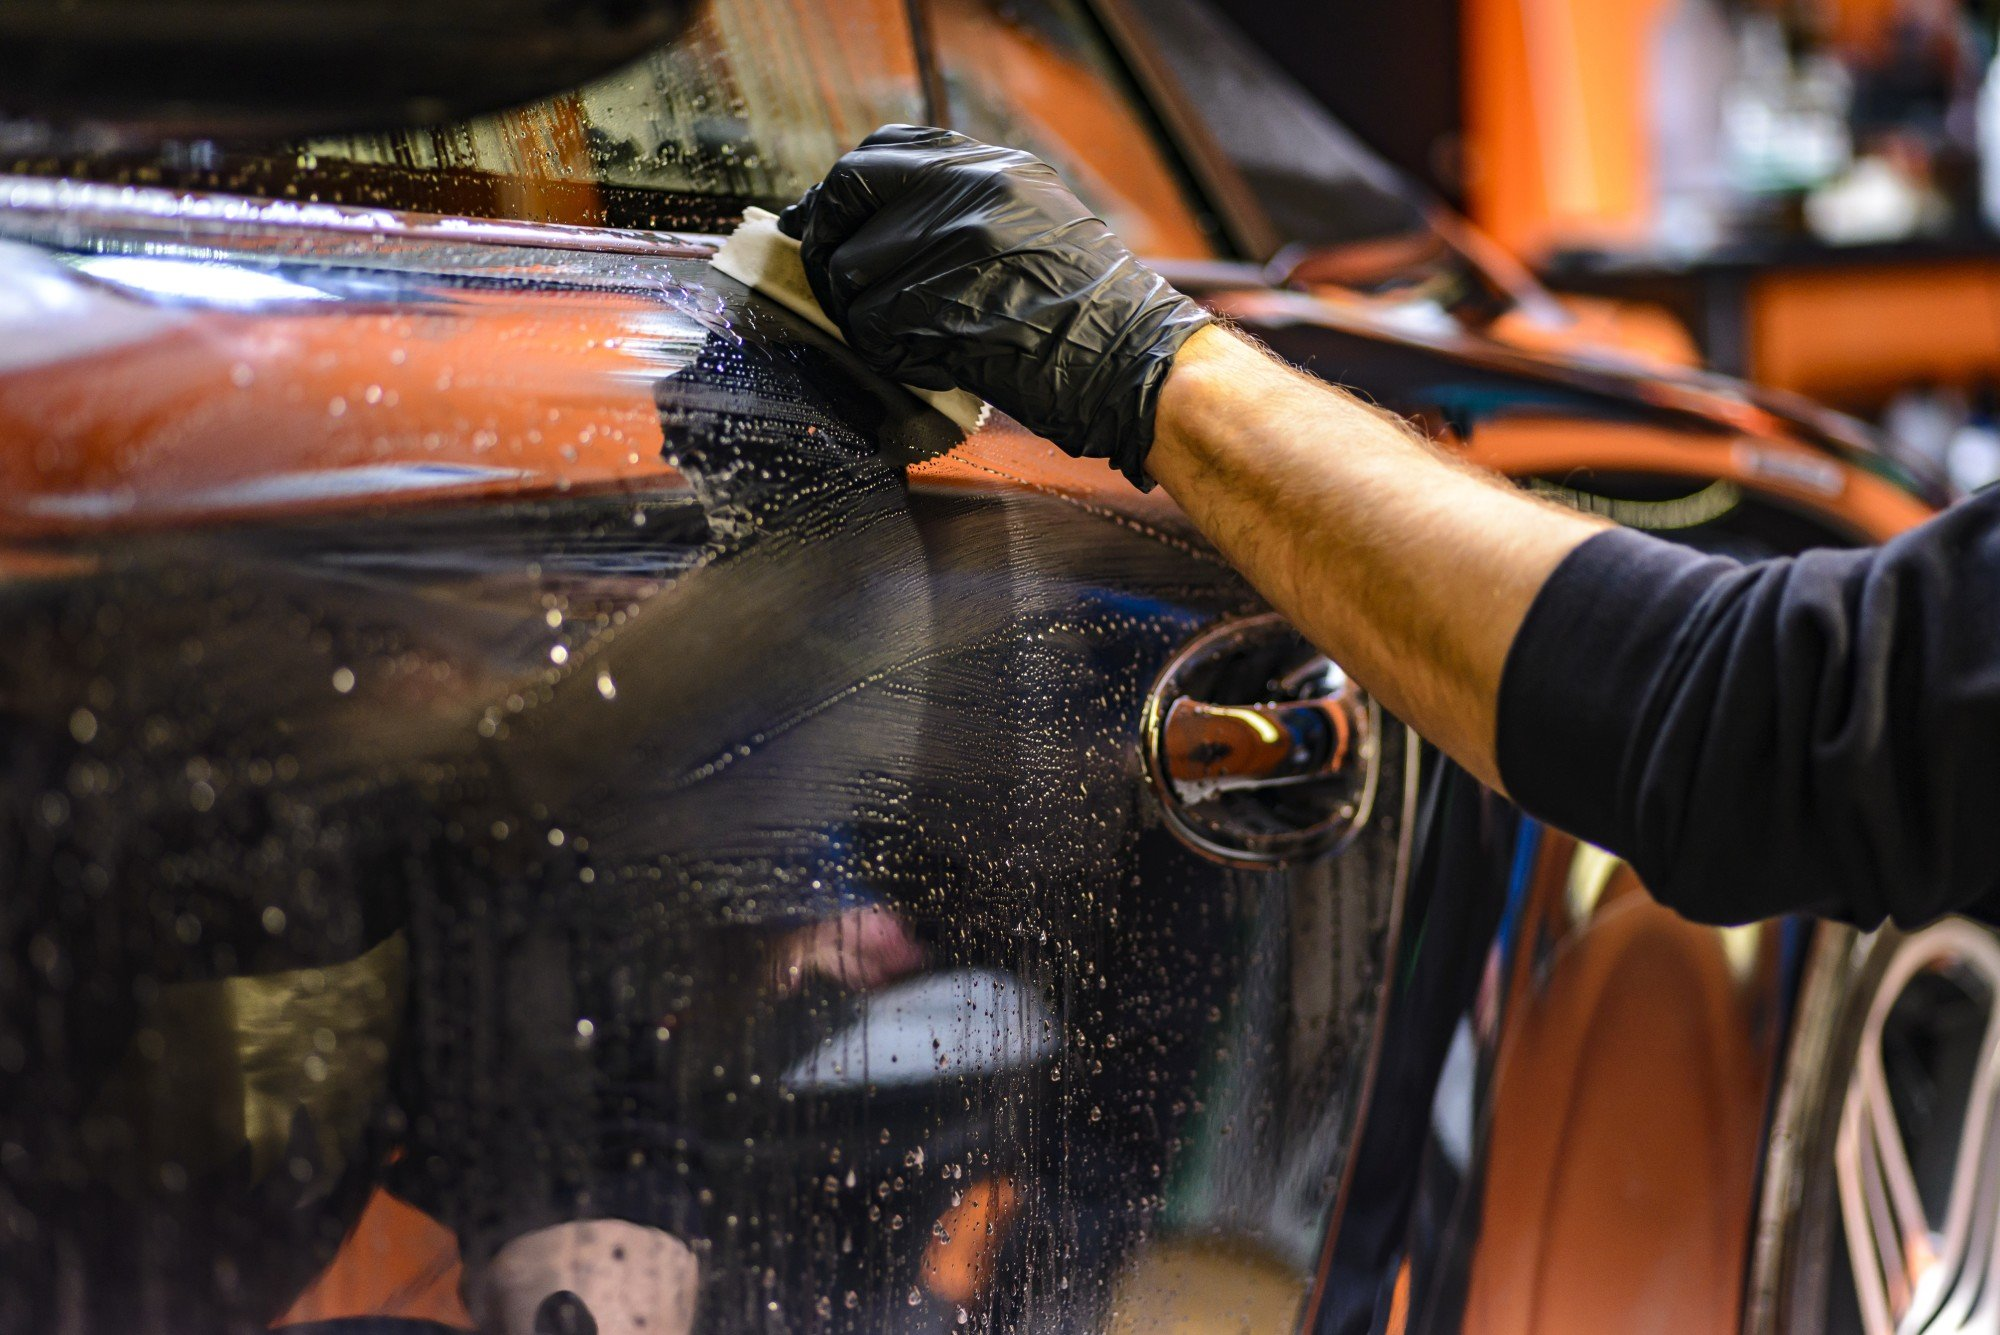 Tips and Tricks for Finding the Best Auto Detailing Services